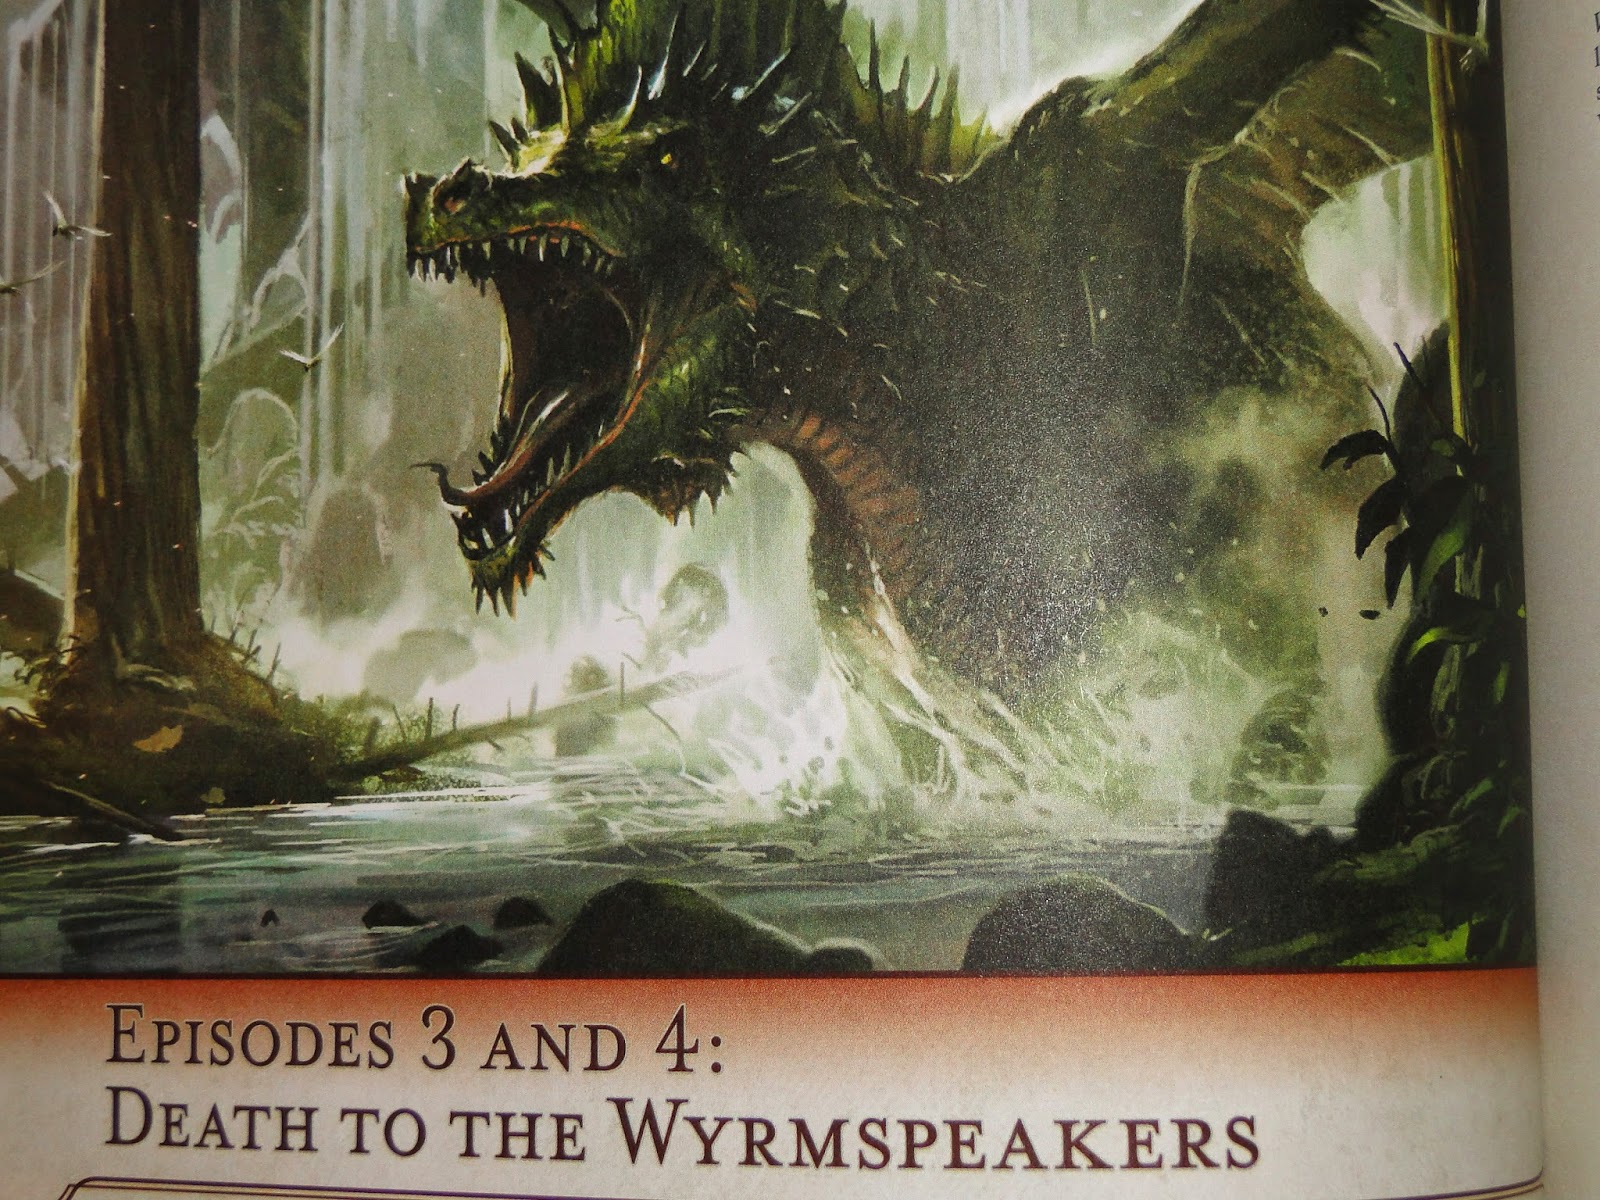 The Rise of Tiamat chapter title and illustration.